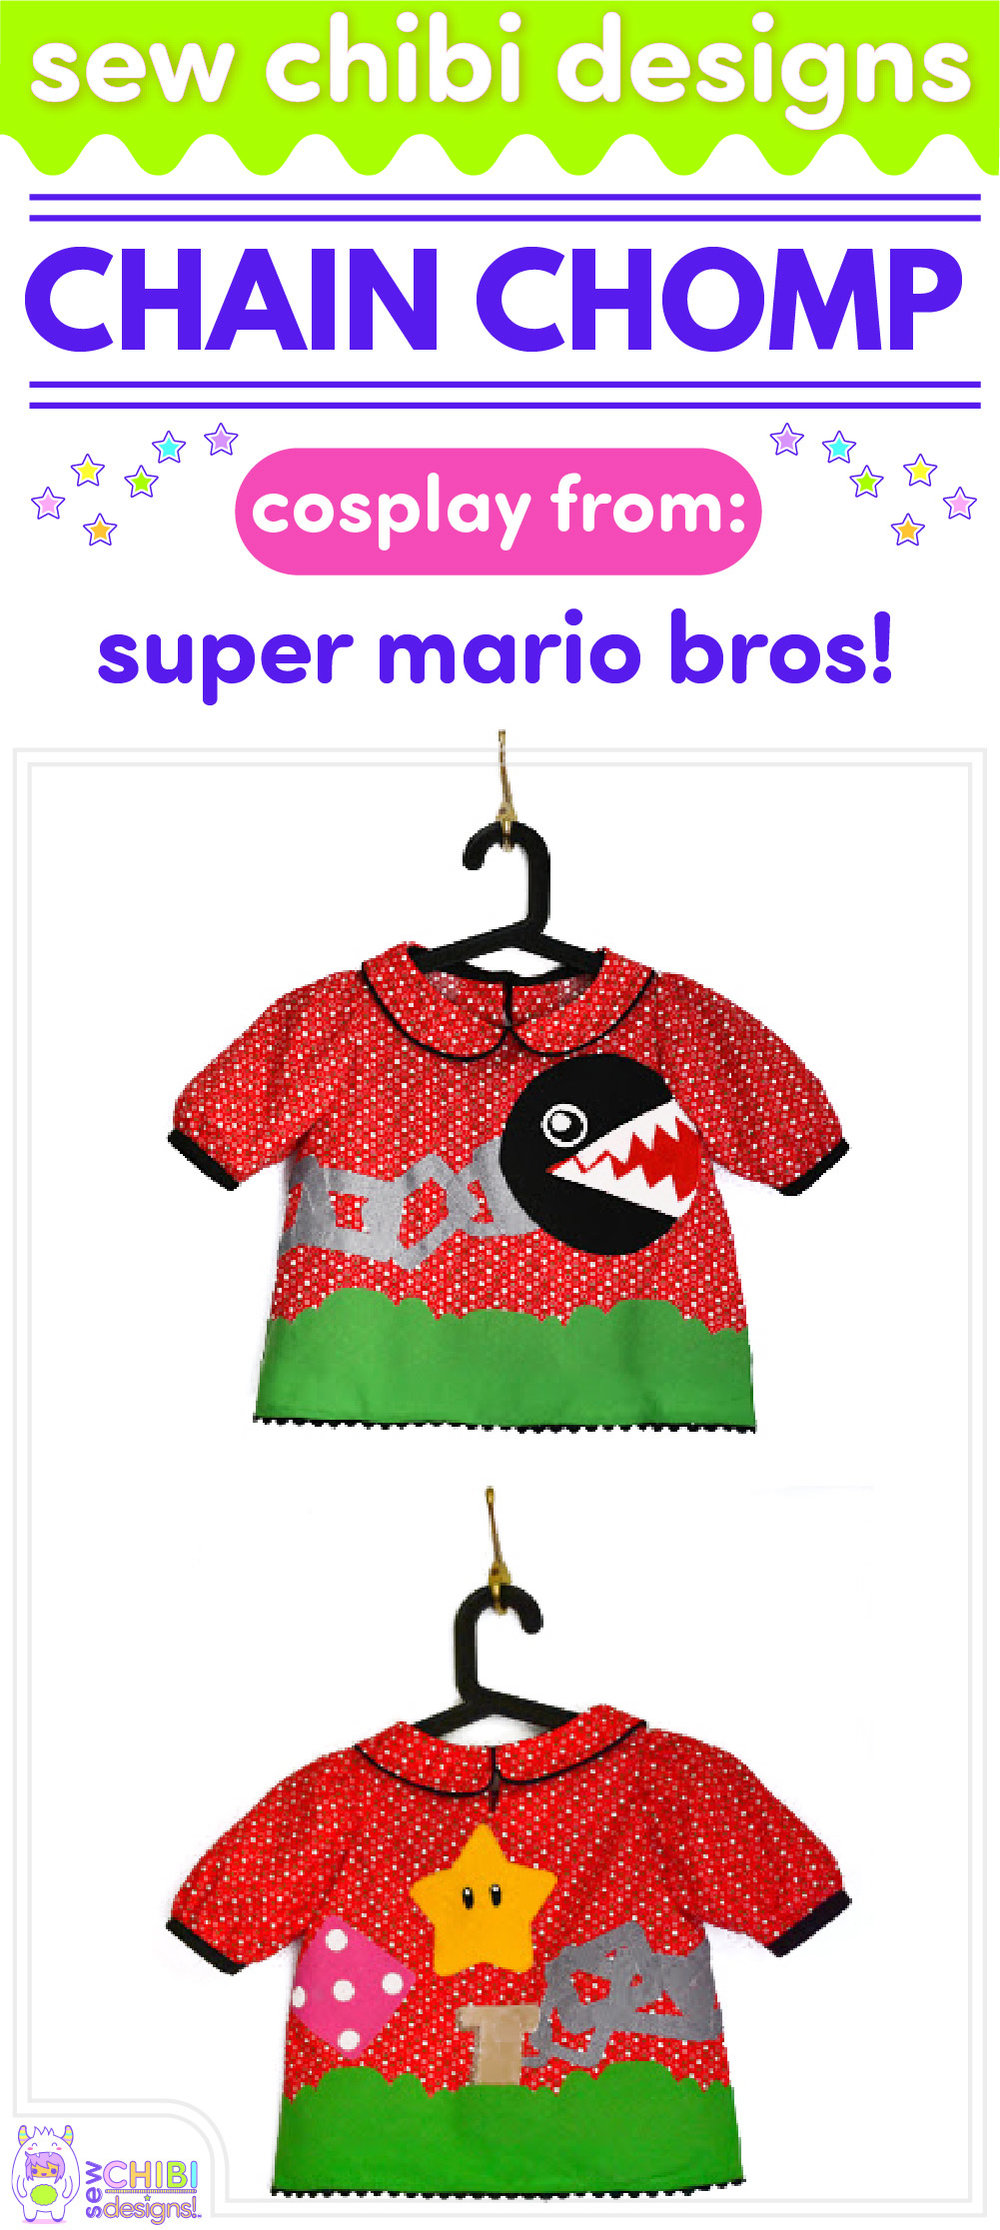 Chain Chomp chibi cosplay from Super Mario Brothers sewn by Sew Chibi Designs for Sew Geeky